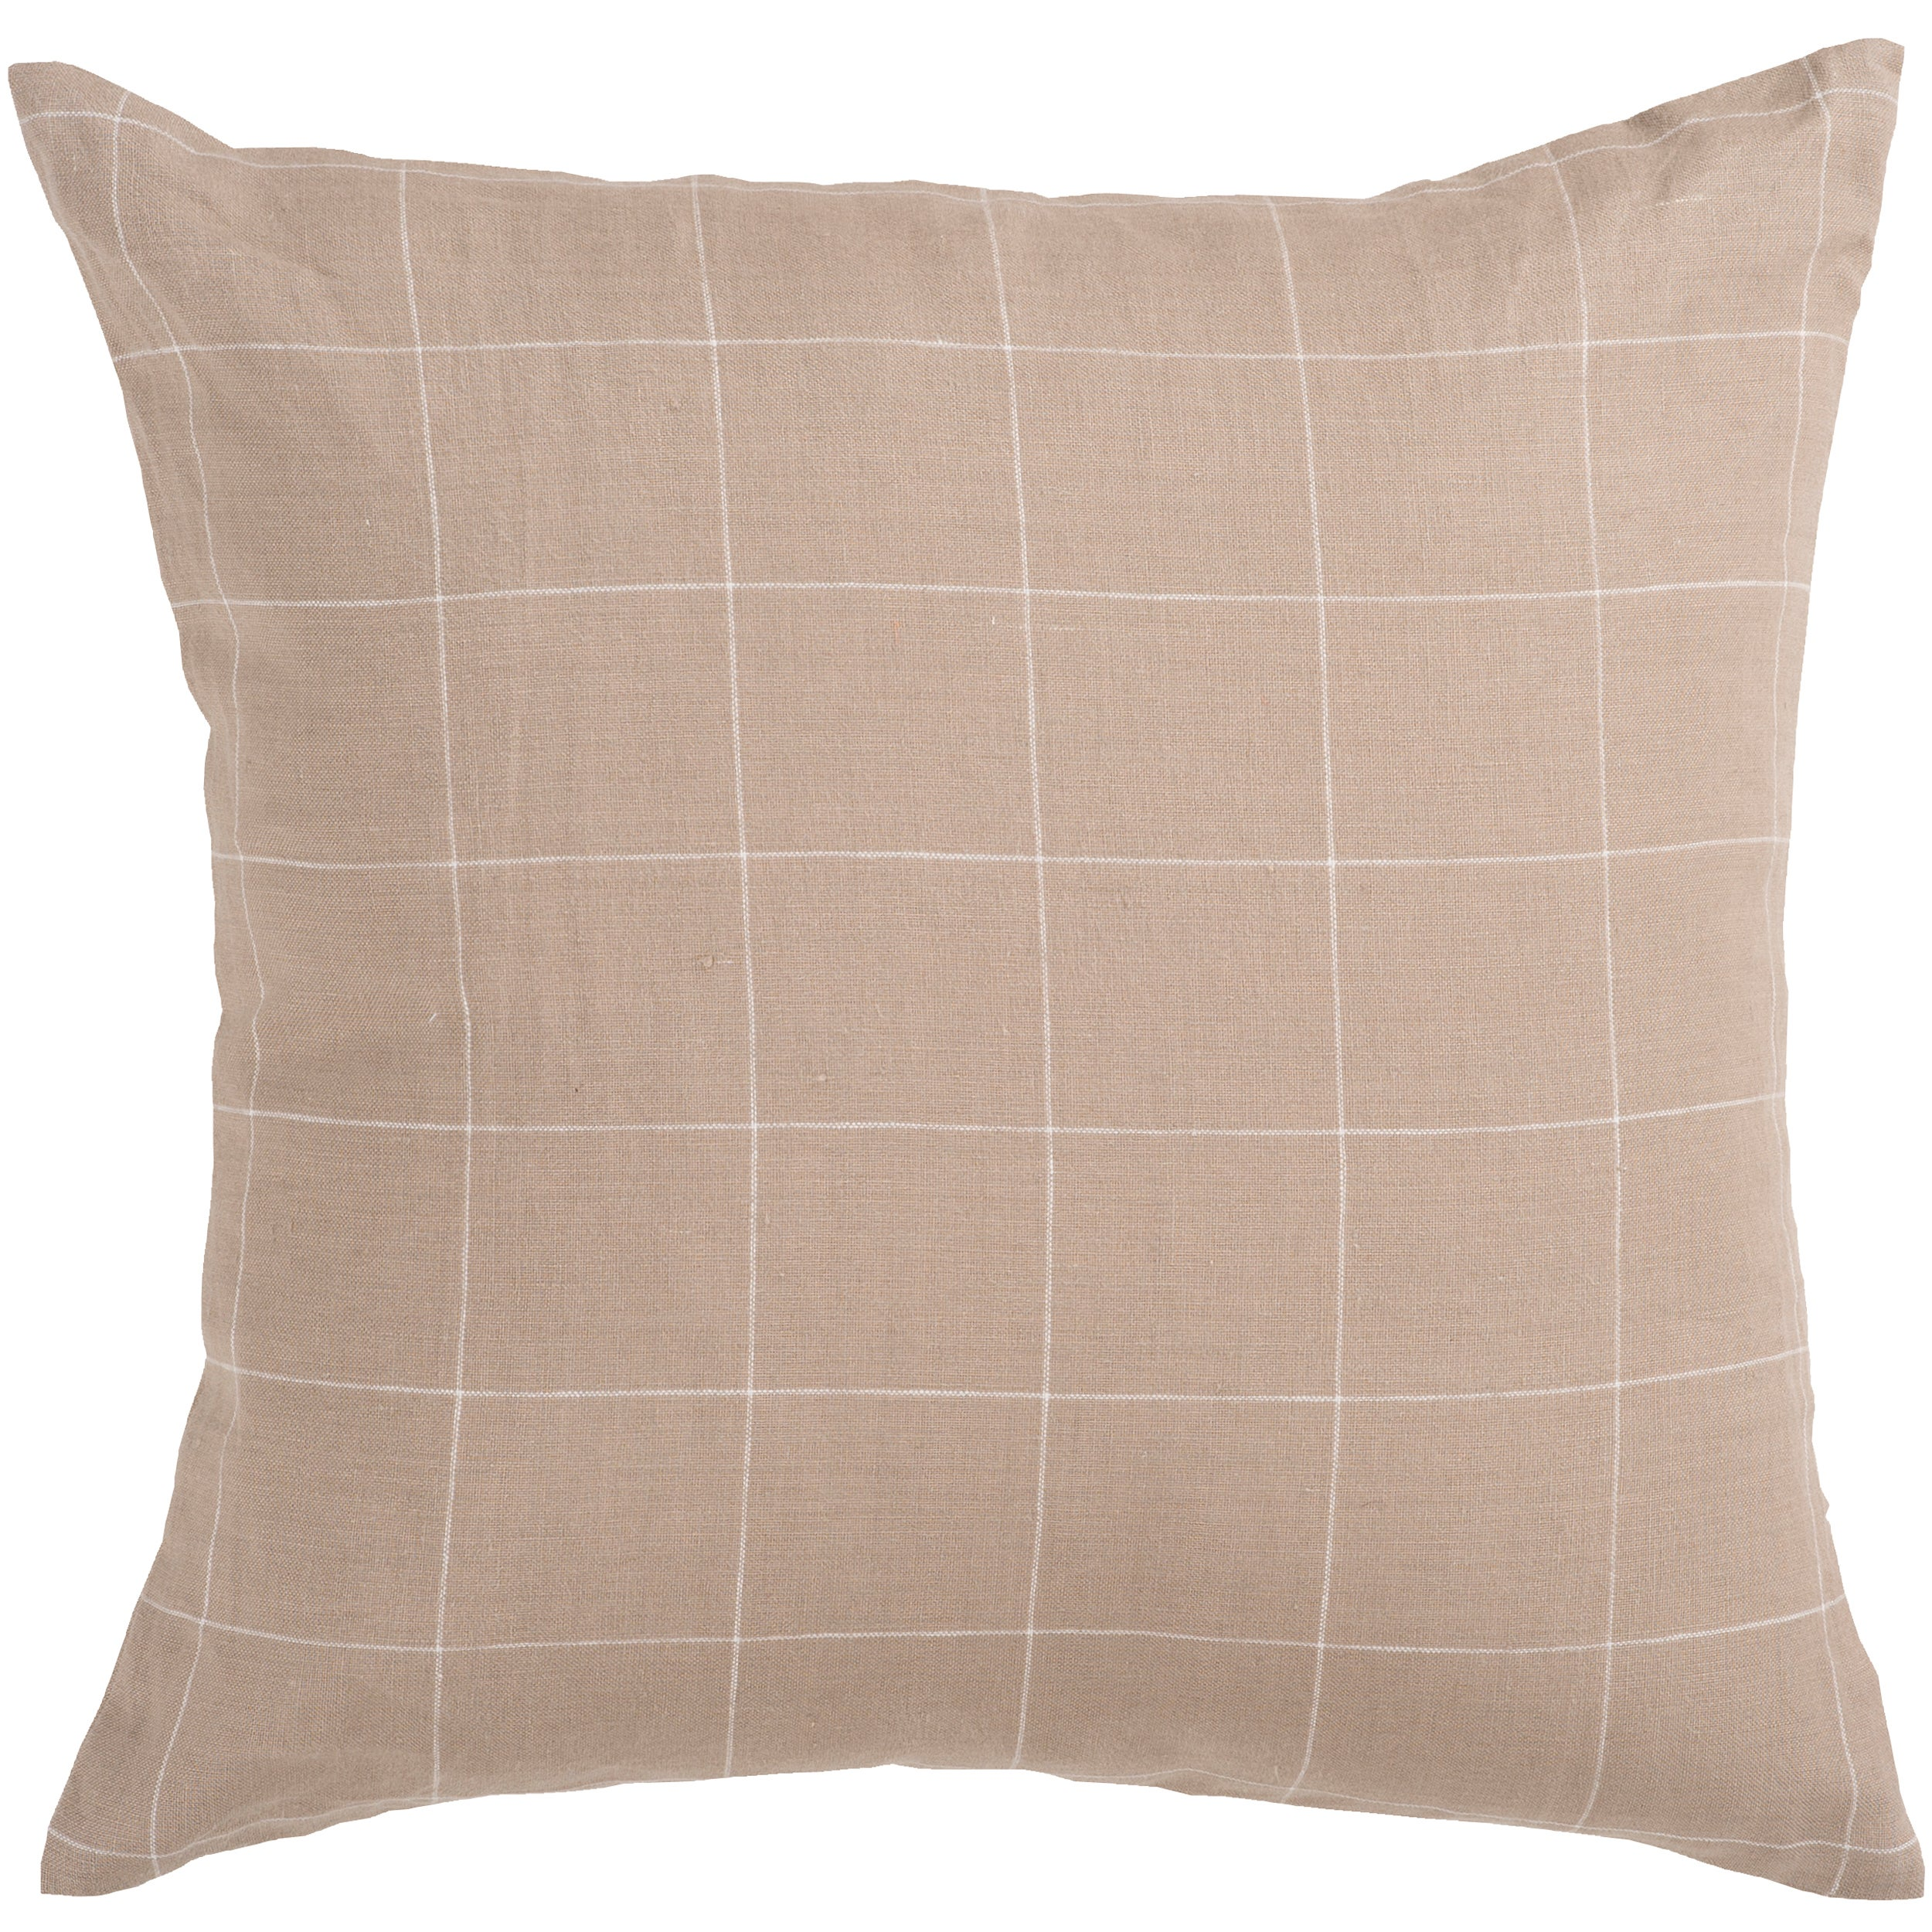 Decorative Pales 22-inch Pillow